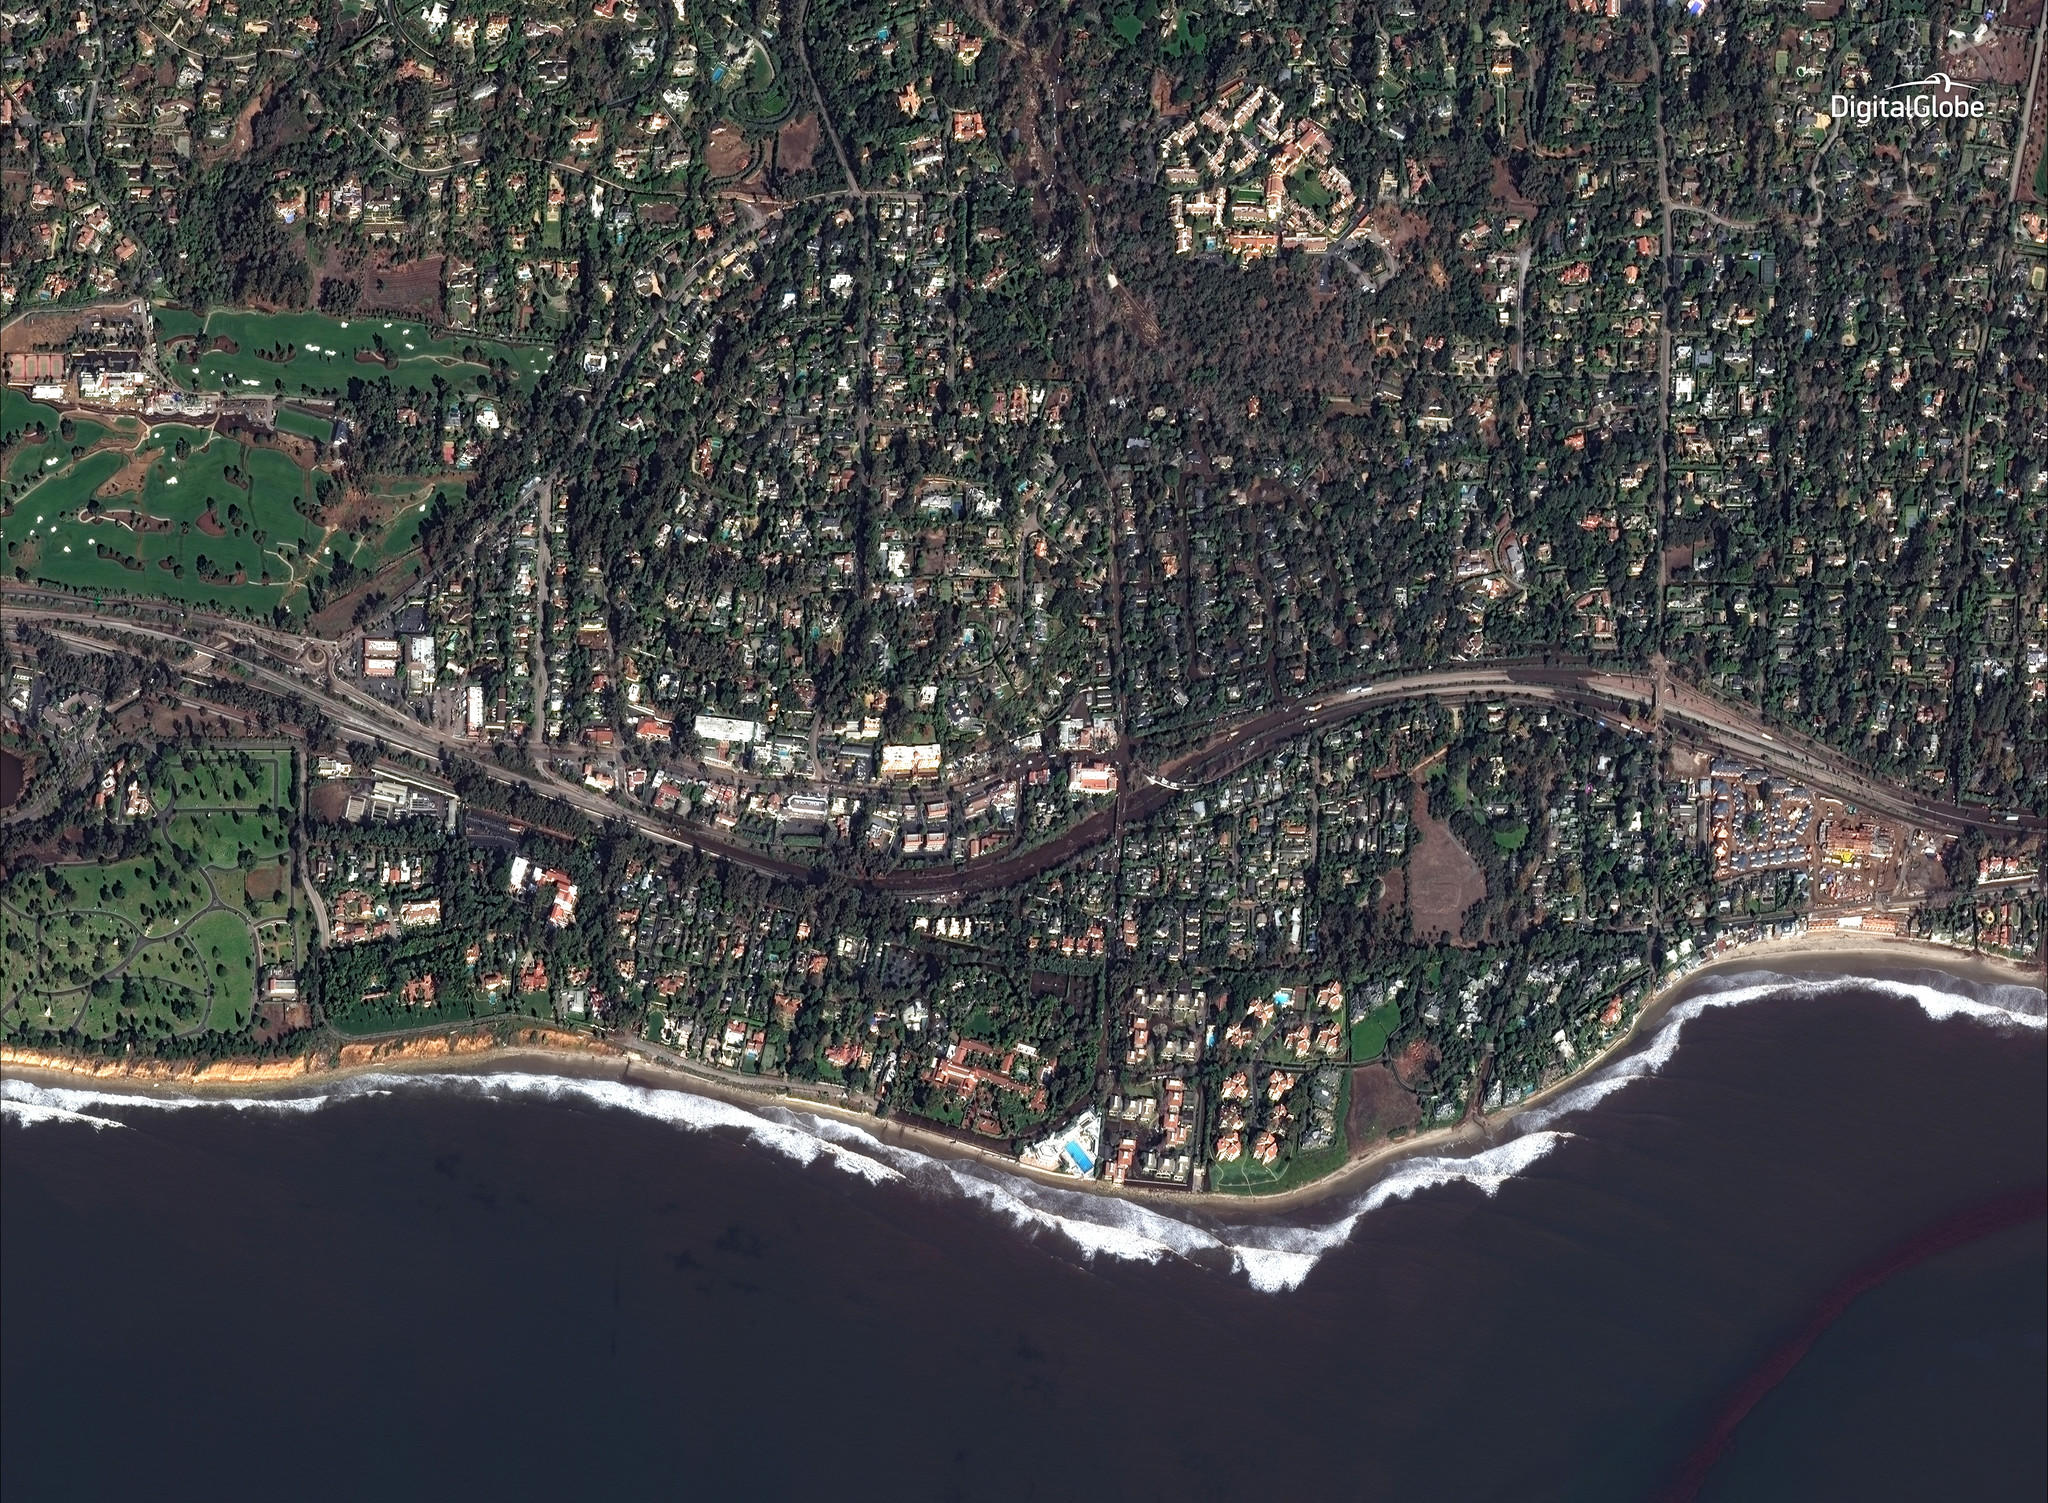 Slide Over These Photos To Compare Beforeandafter Satellite - Satellite picture of